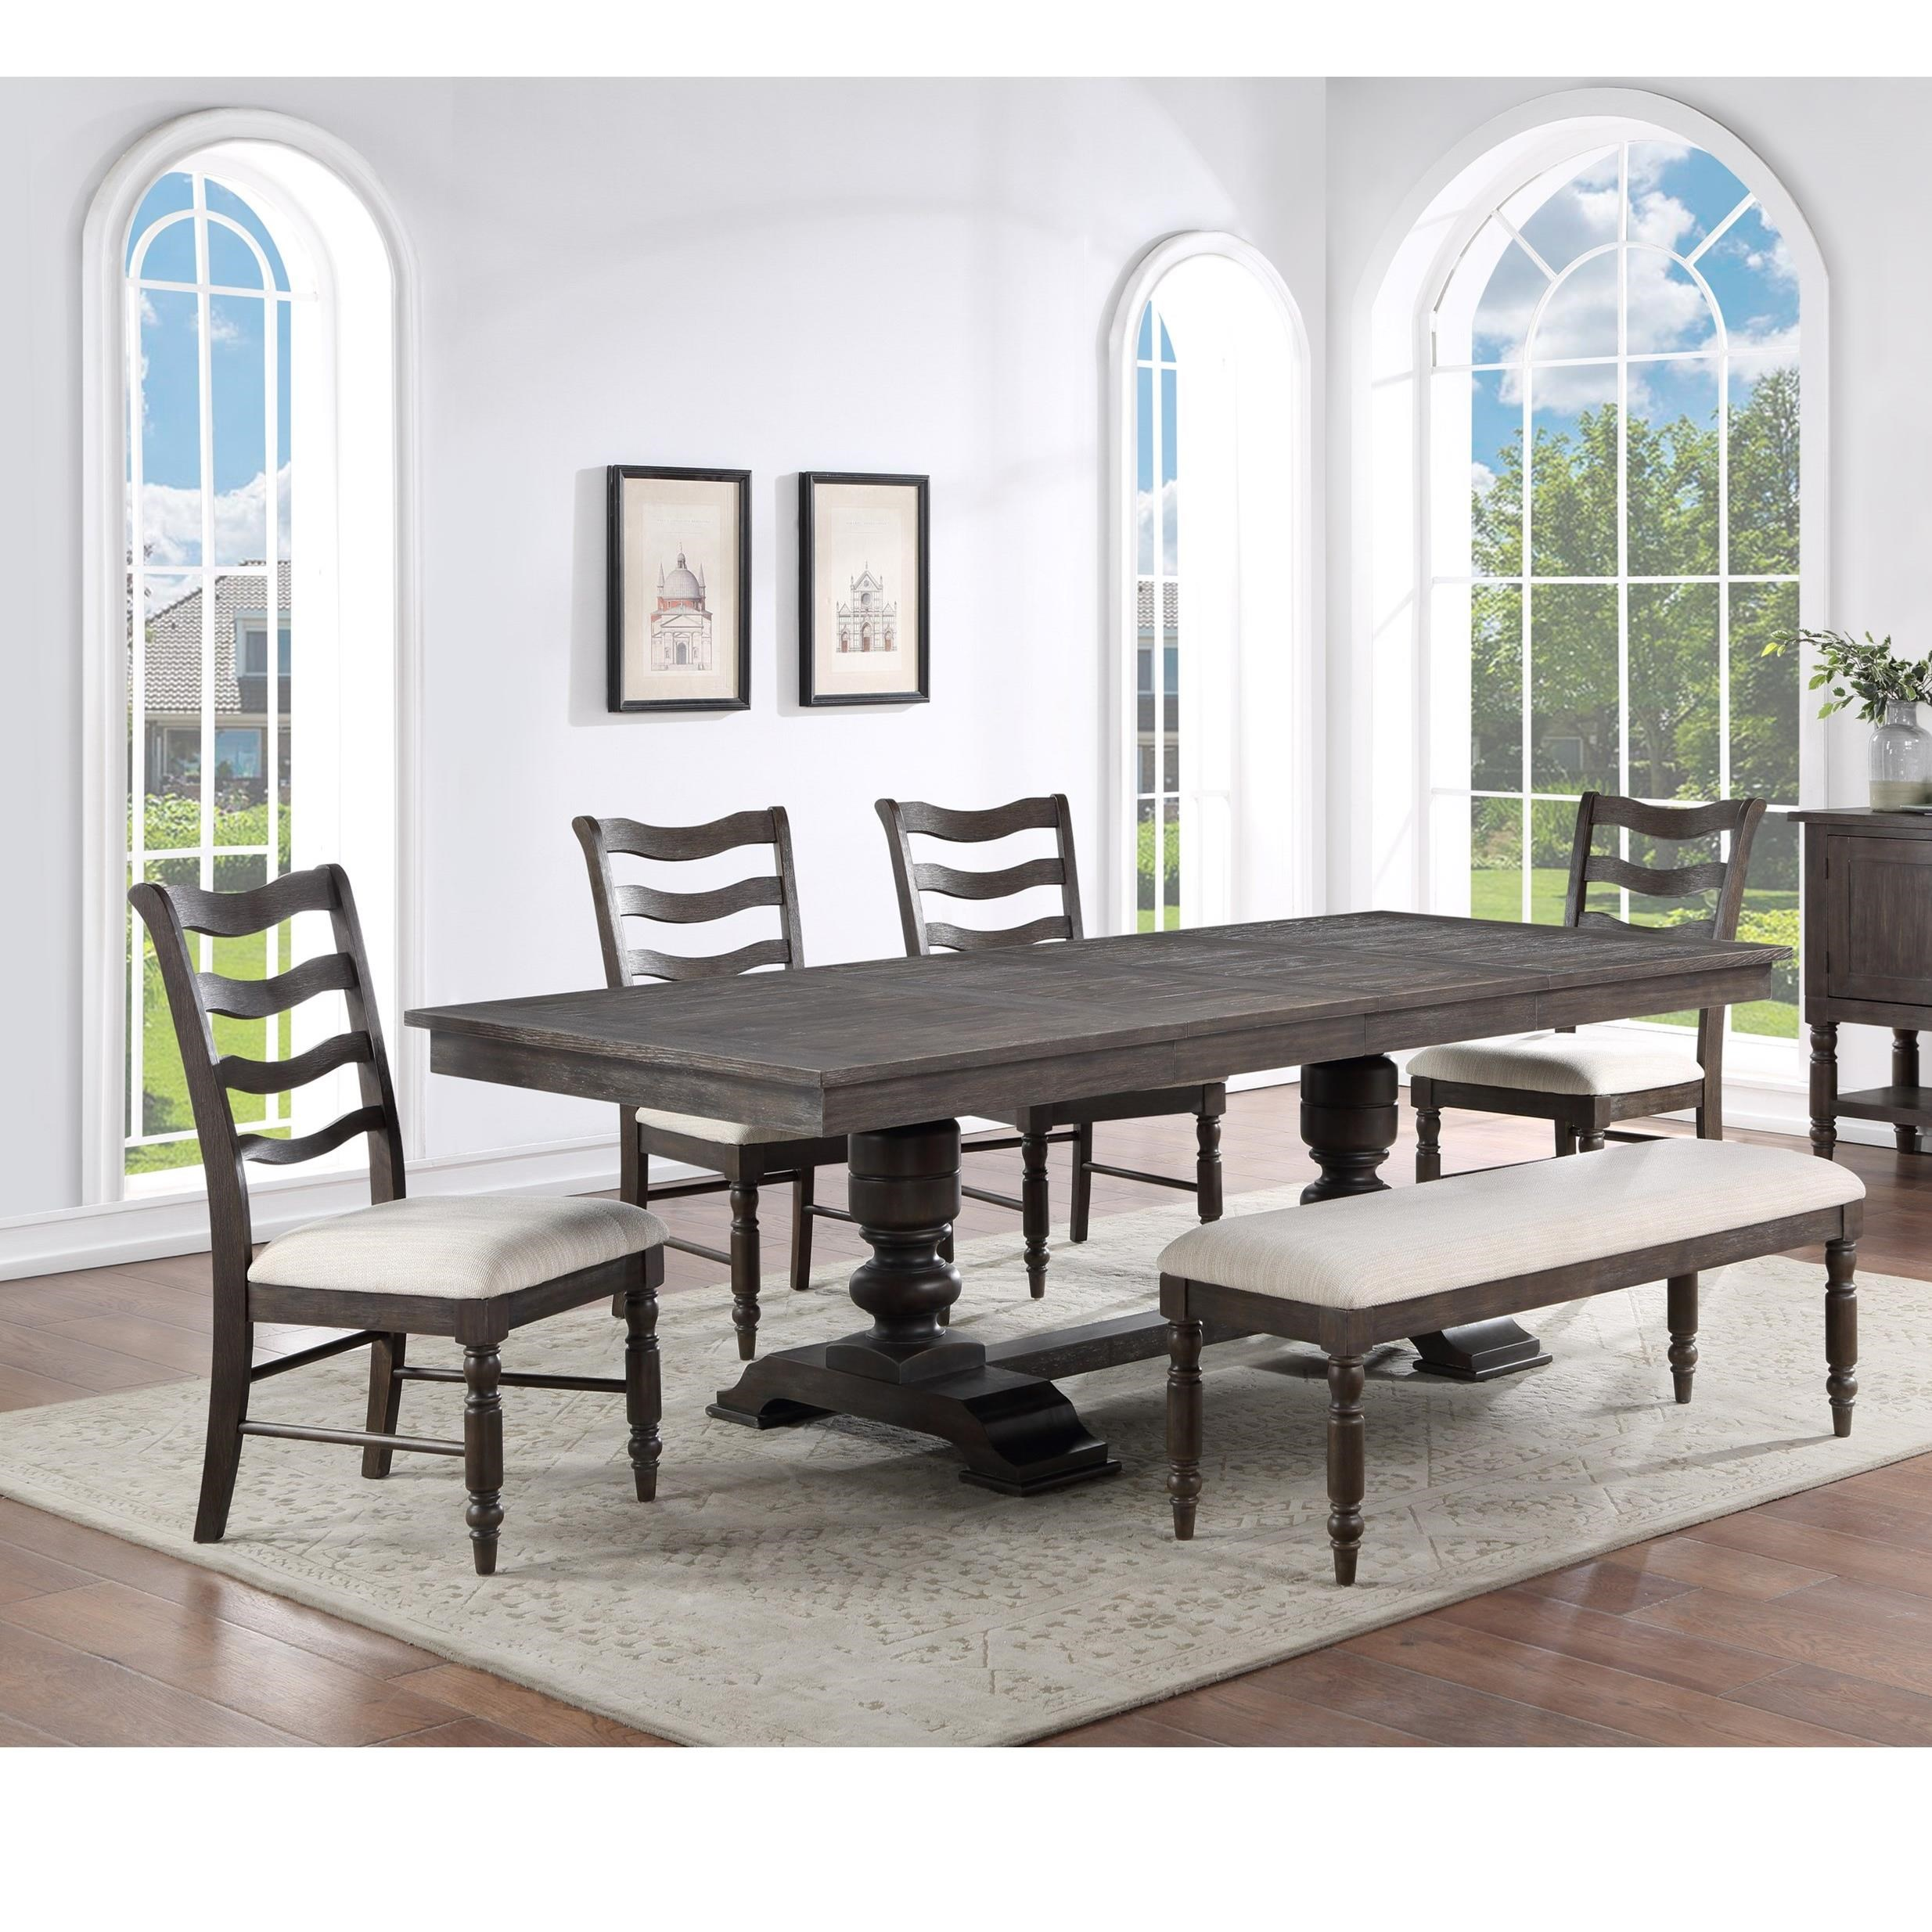 Hutchins Table & Chair Set with Bench by Steve Silver at Walker's Furniture